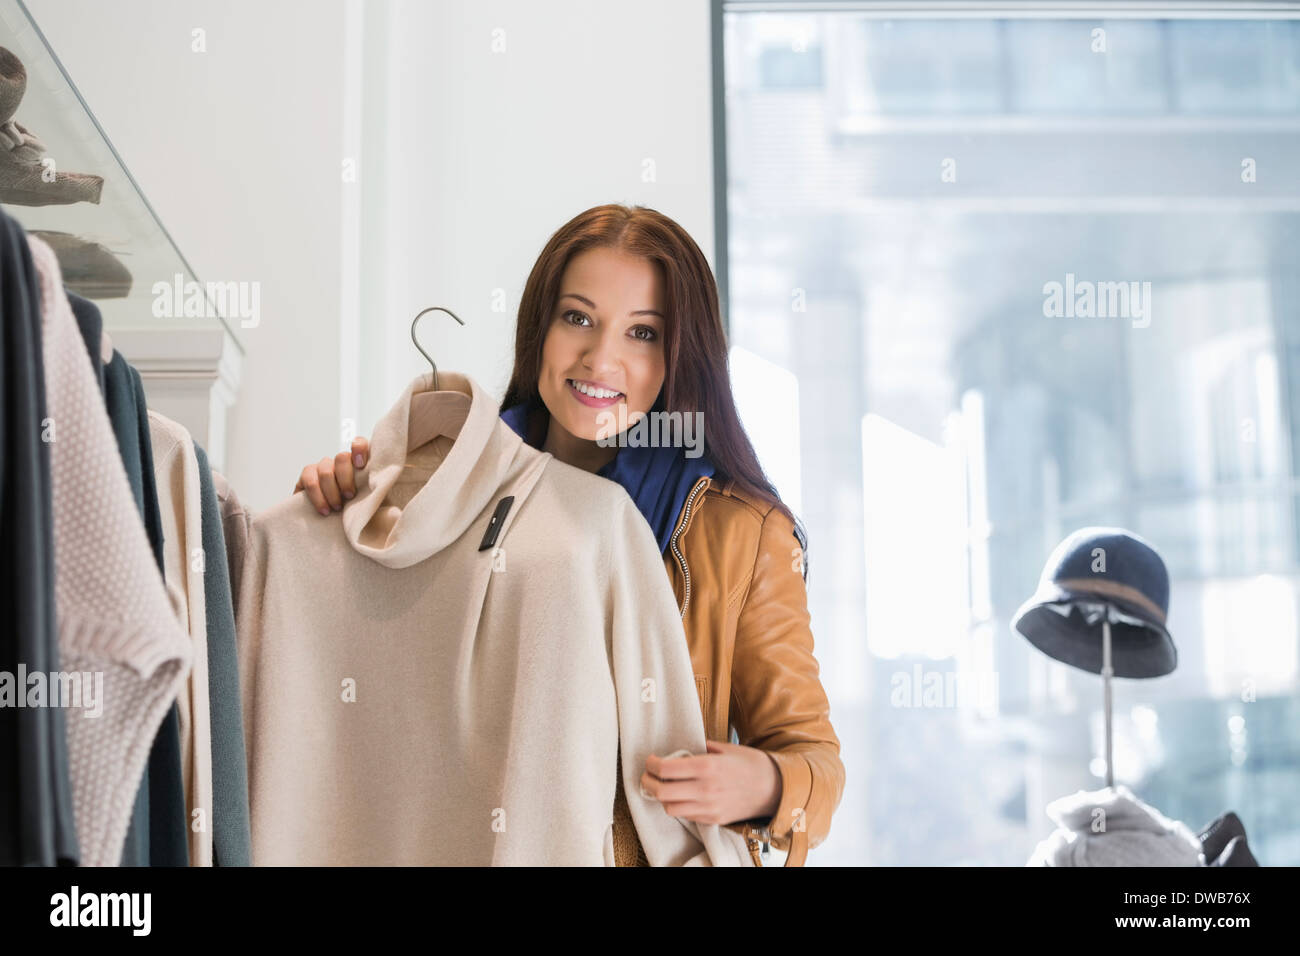 Portrait of young woman choosing sweater in store - Stock Image